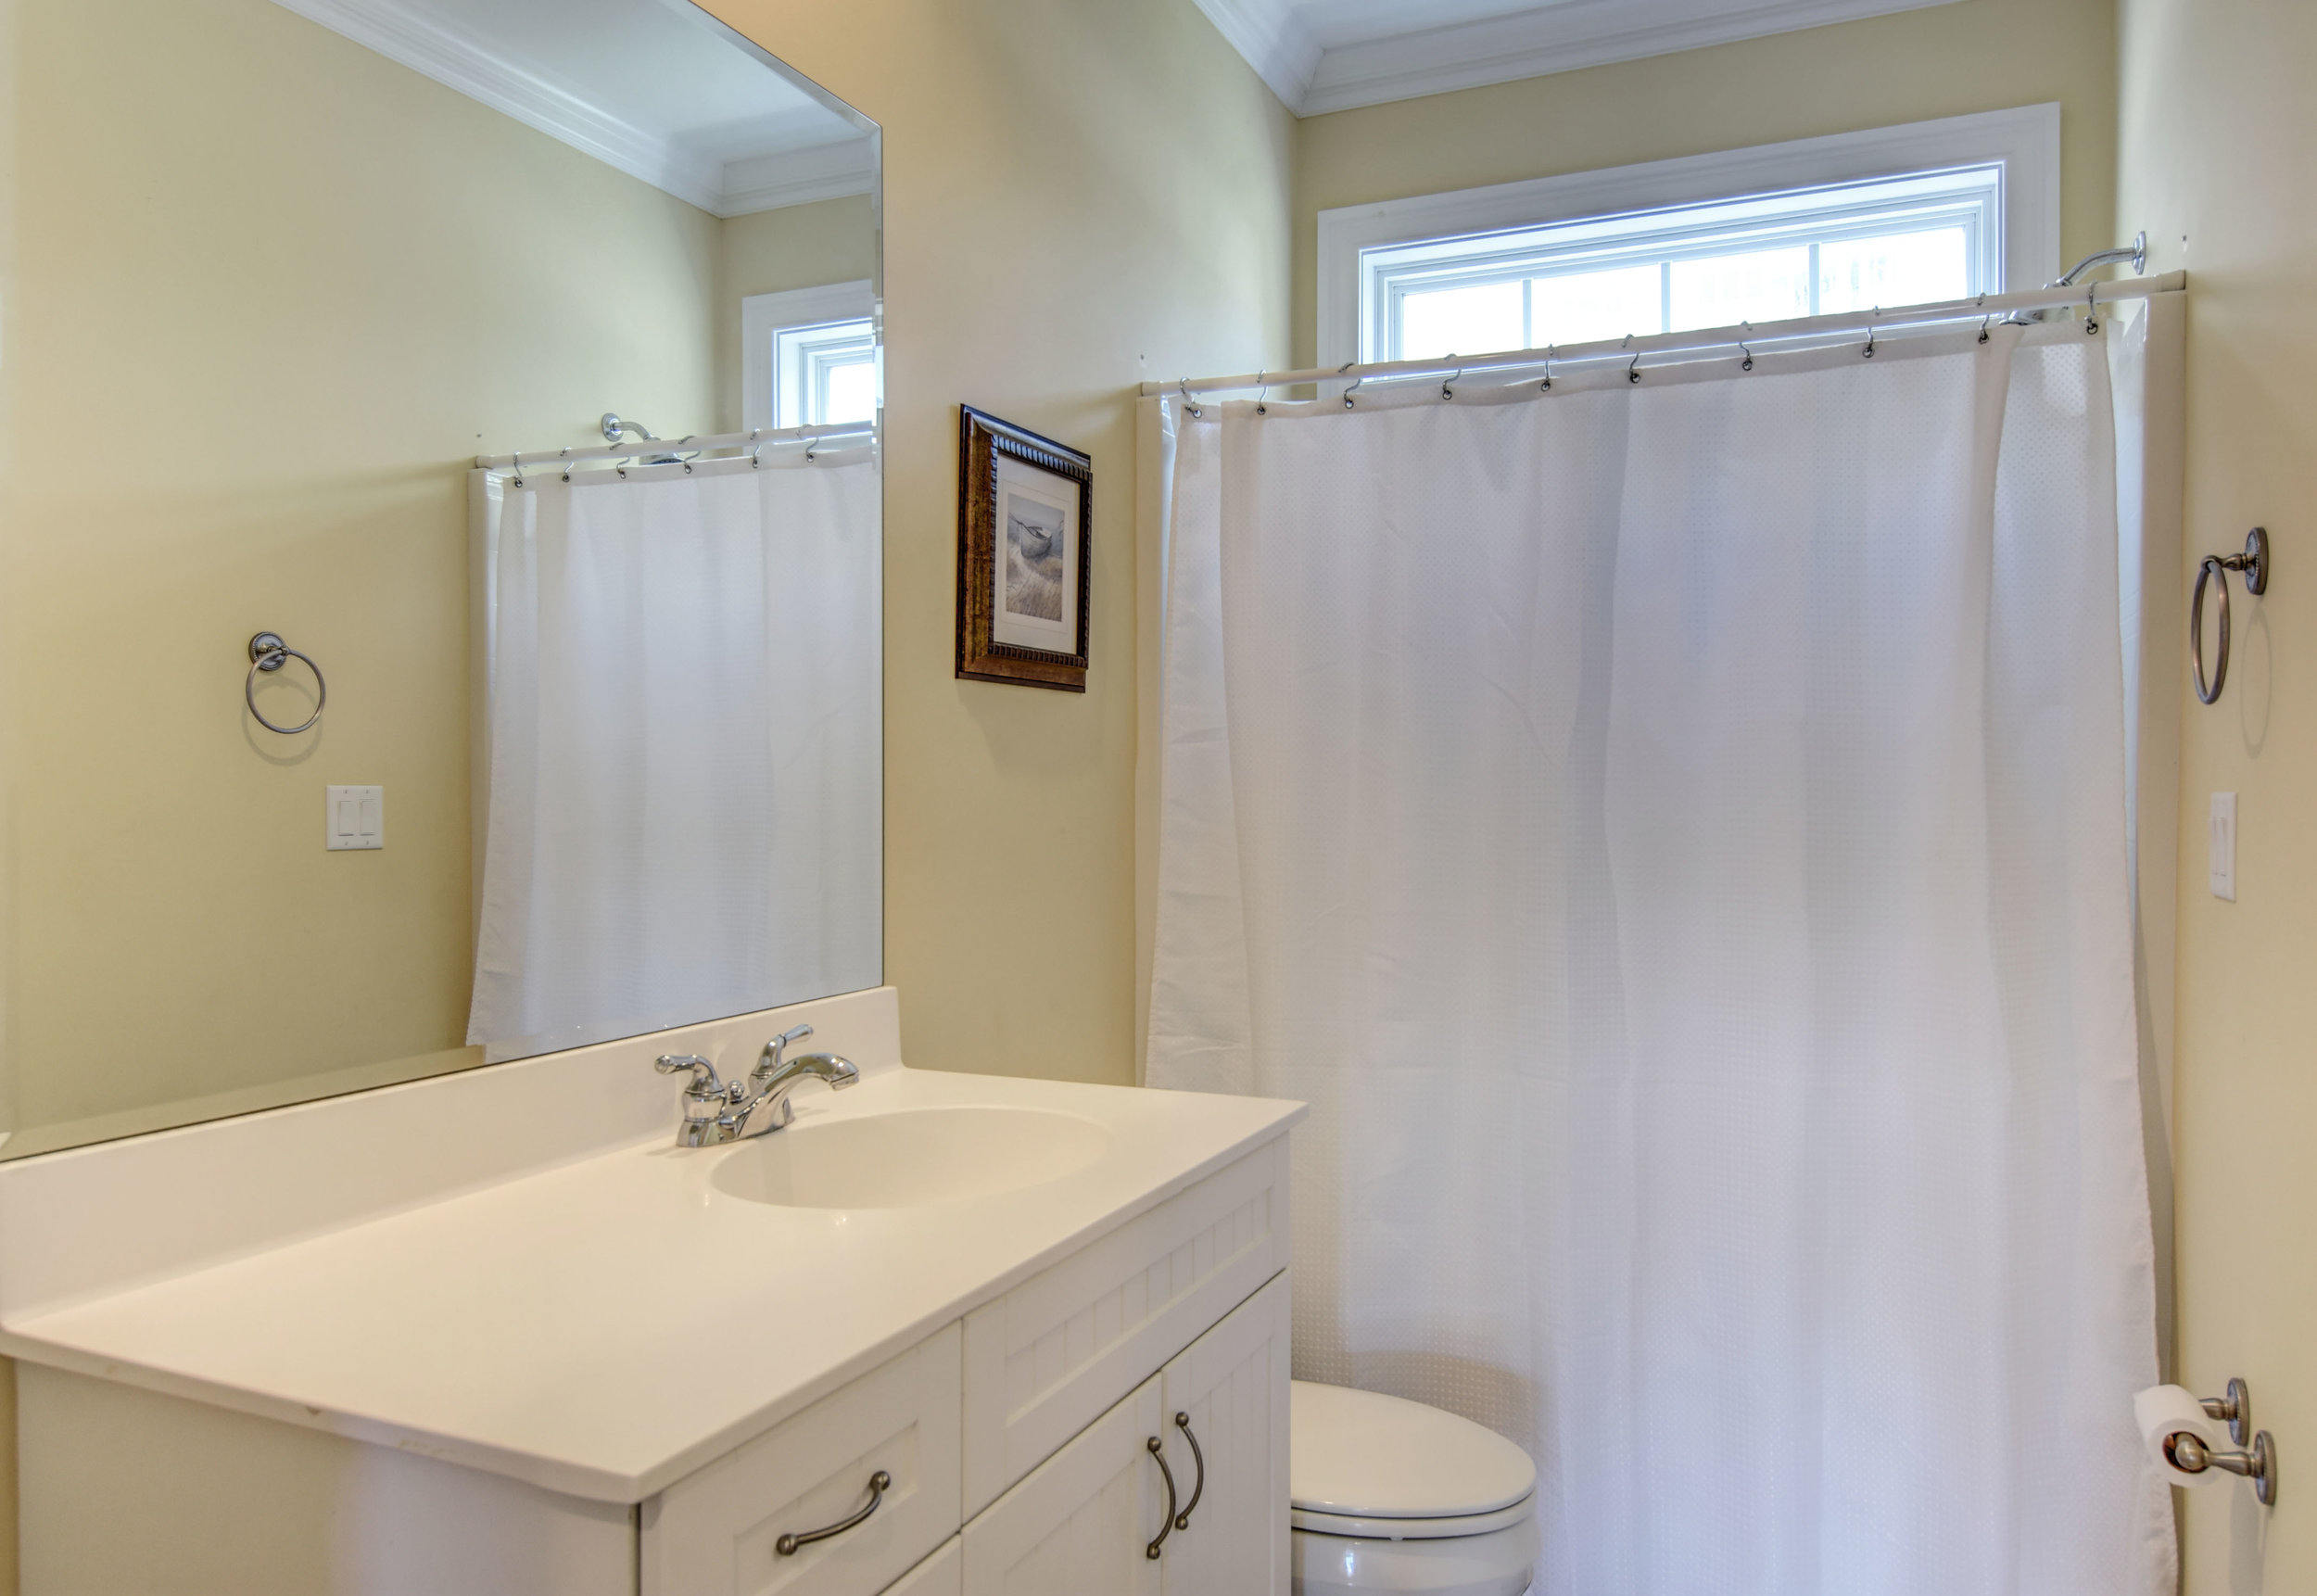 1514 Bowfin Lane Unit 2-print-022-4-Guest Bath main level-4200x2893-300dpi.jpg